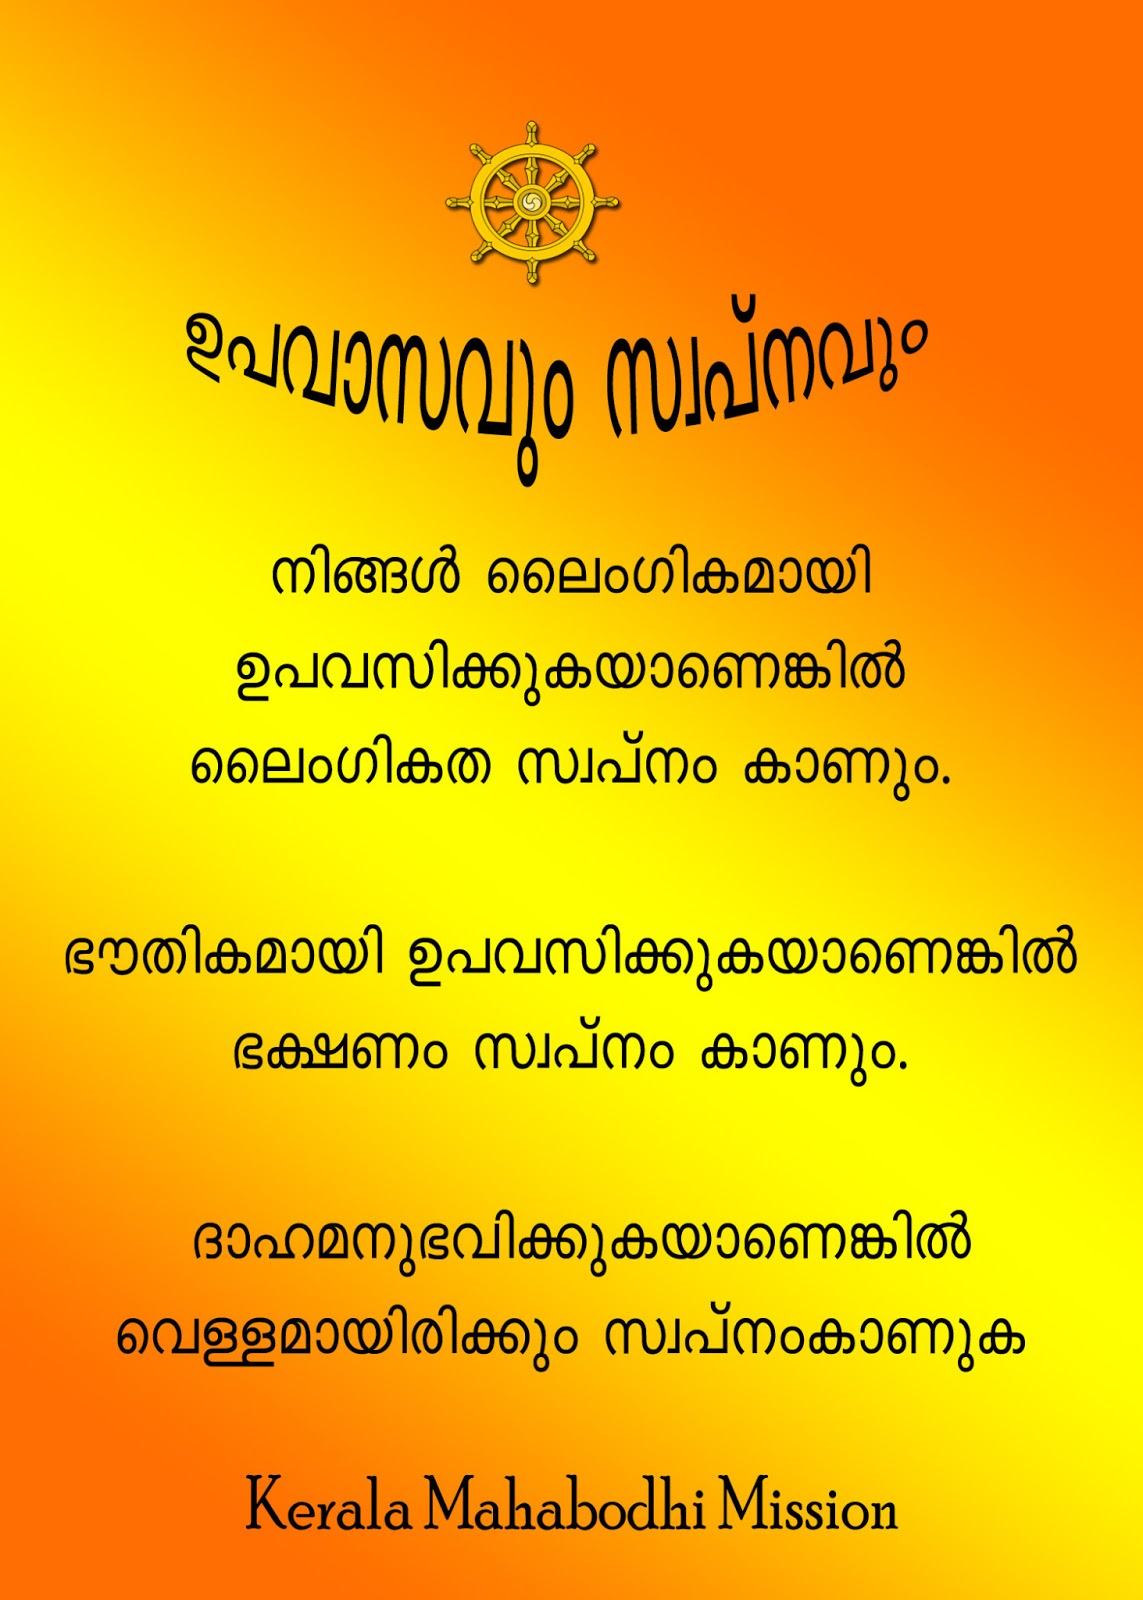 Malayalam Quotes About Life Quotesgram